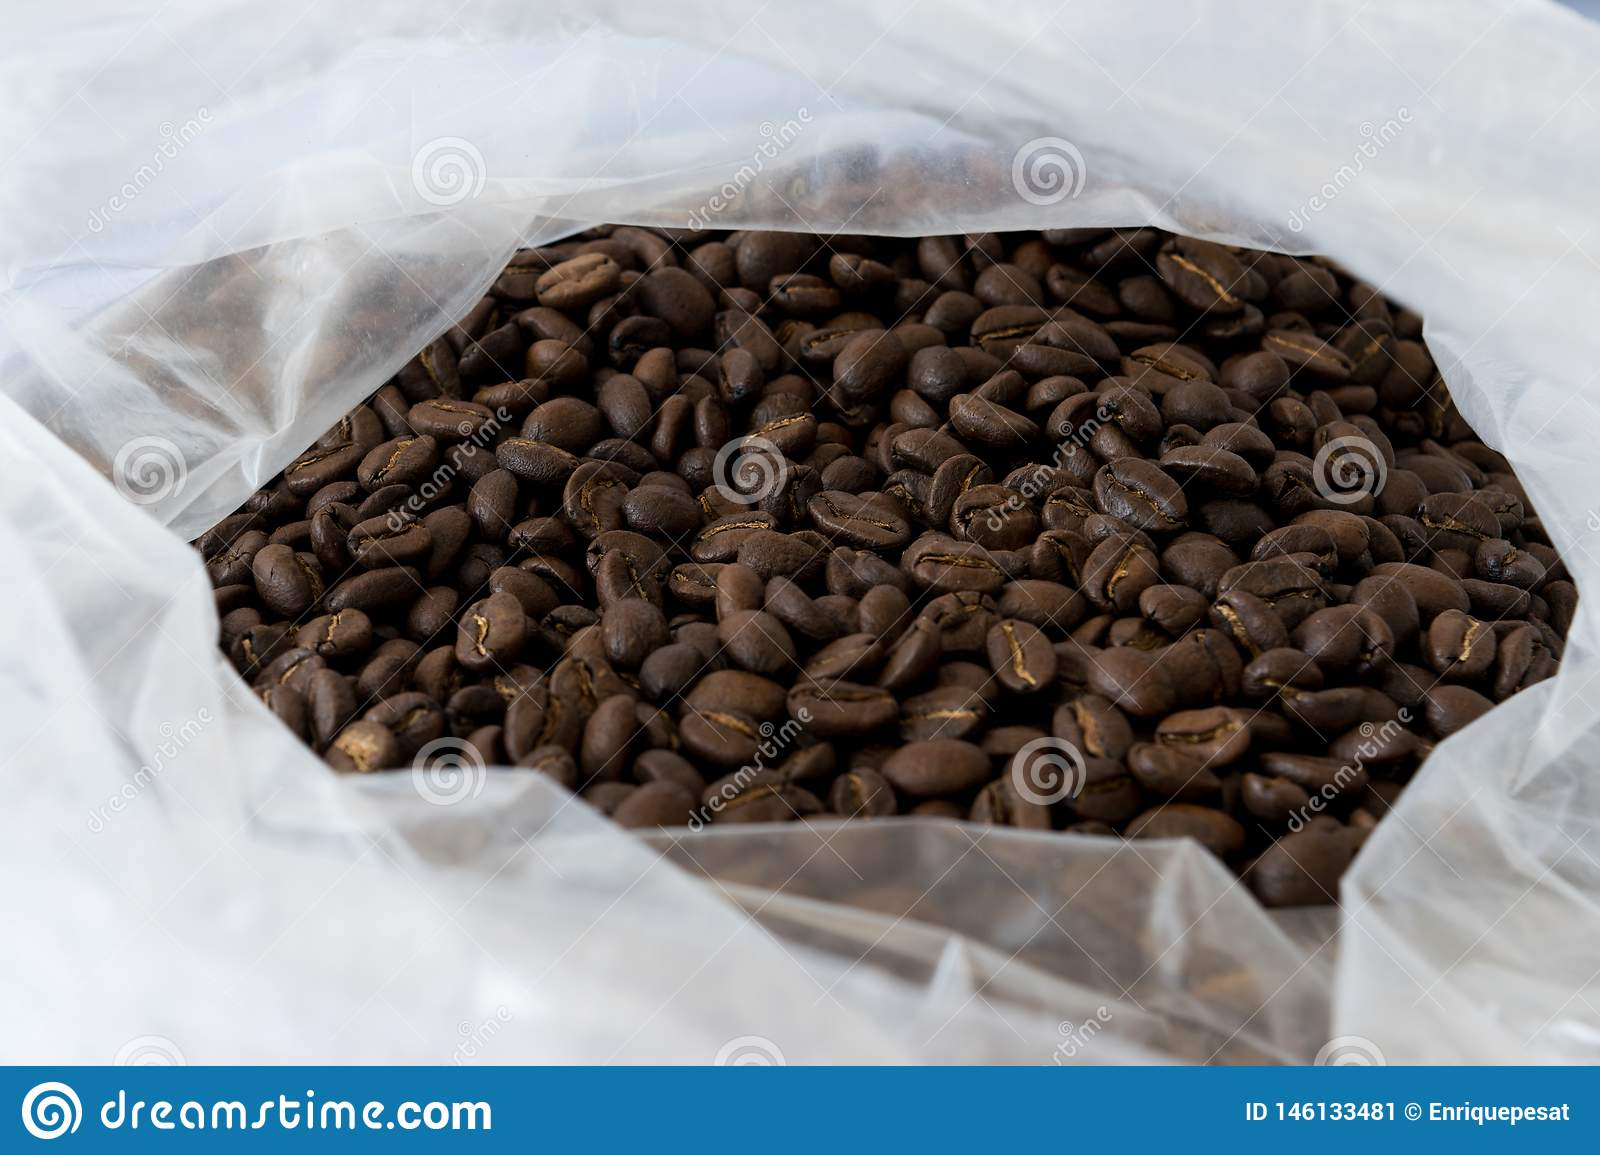 Pile of coffee beans in the bag